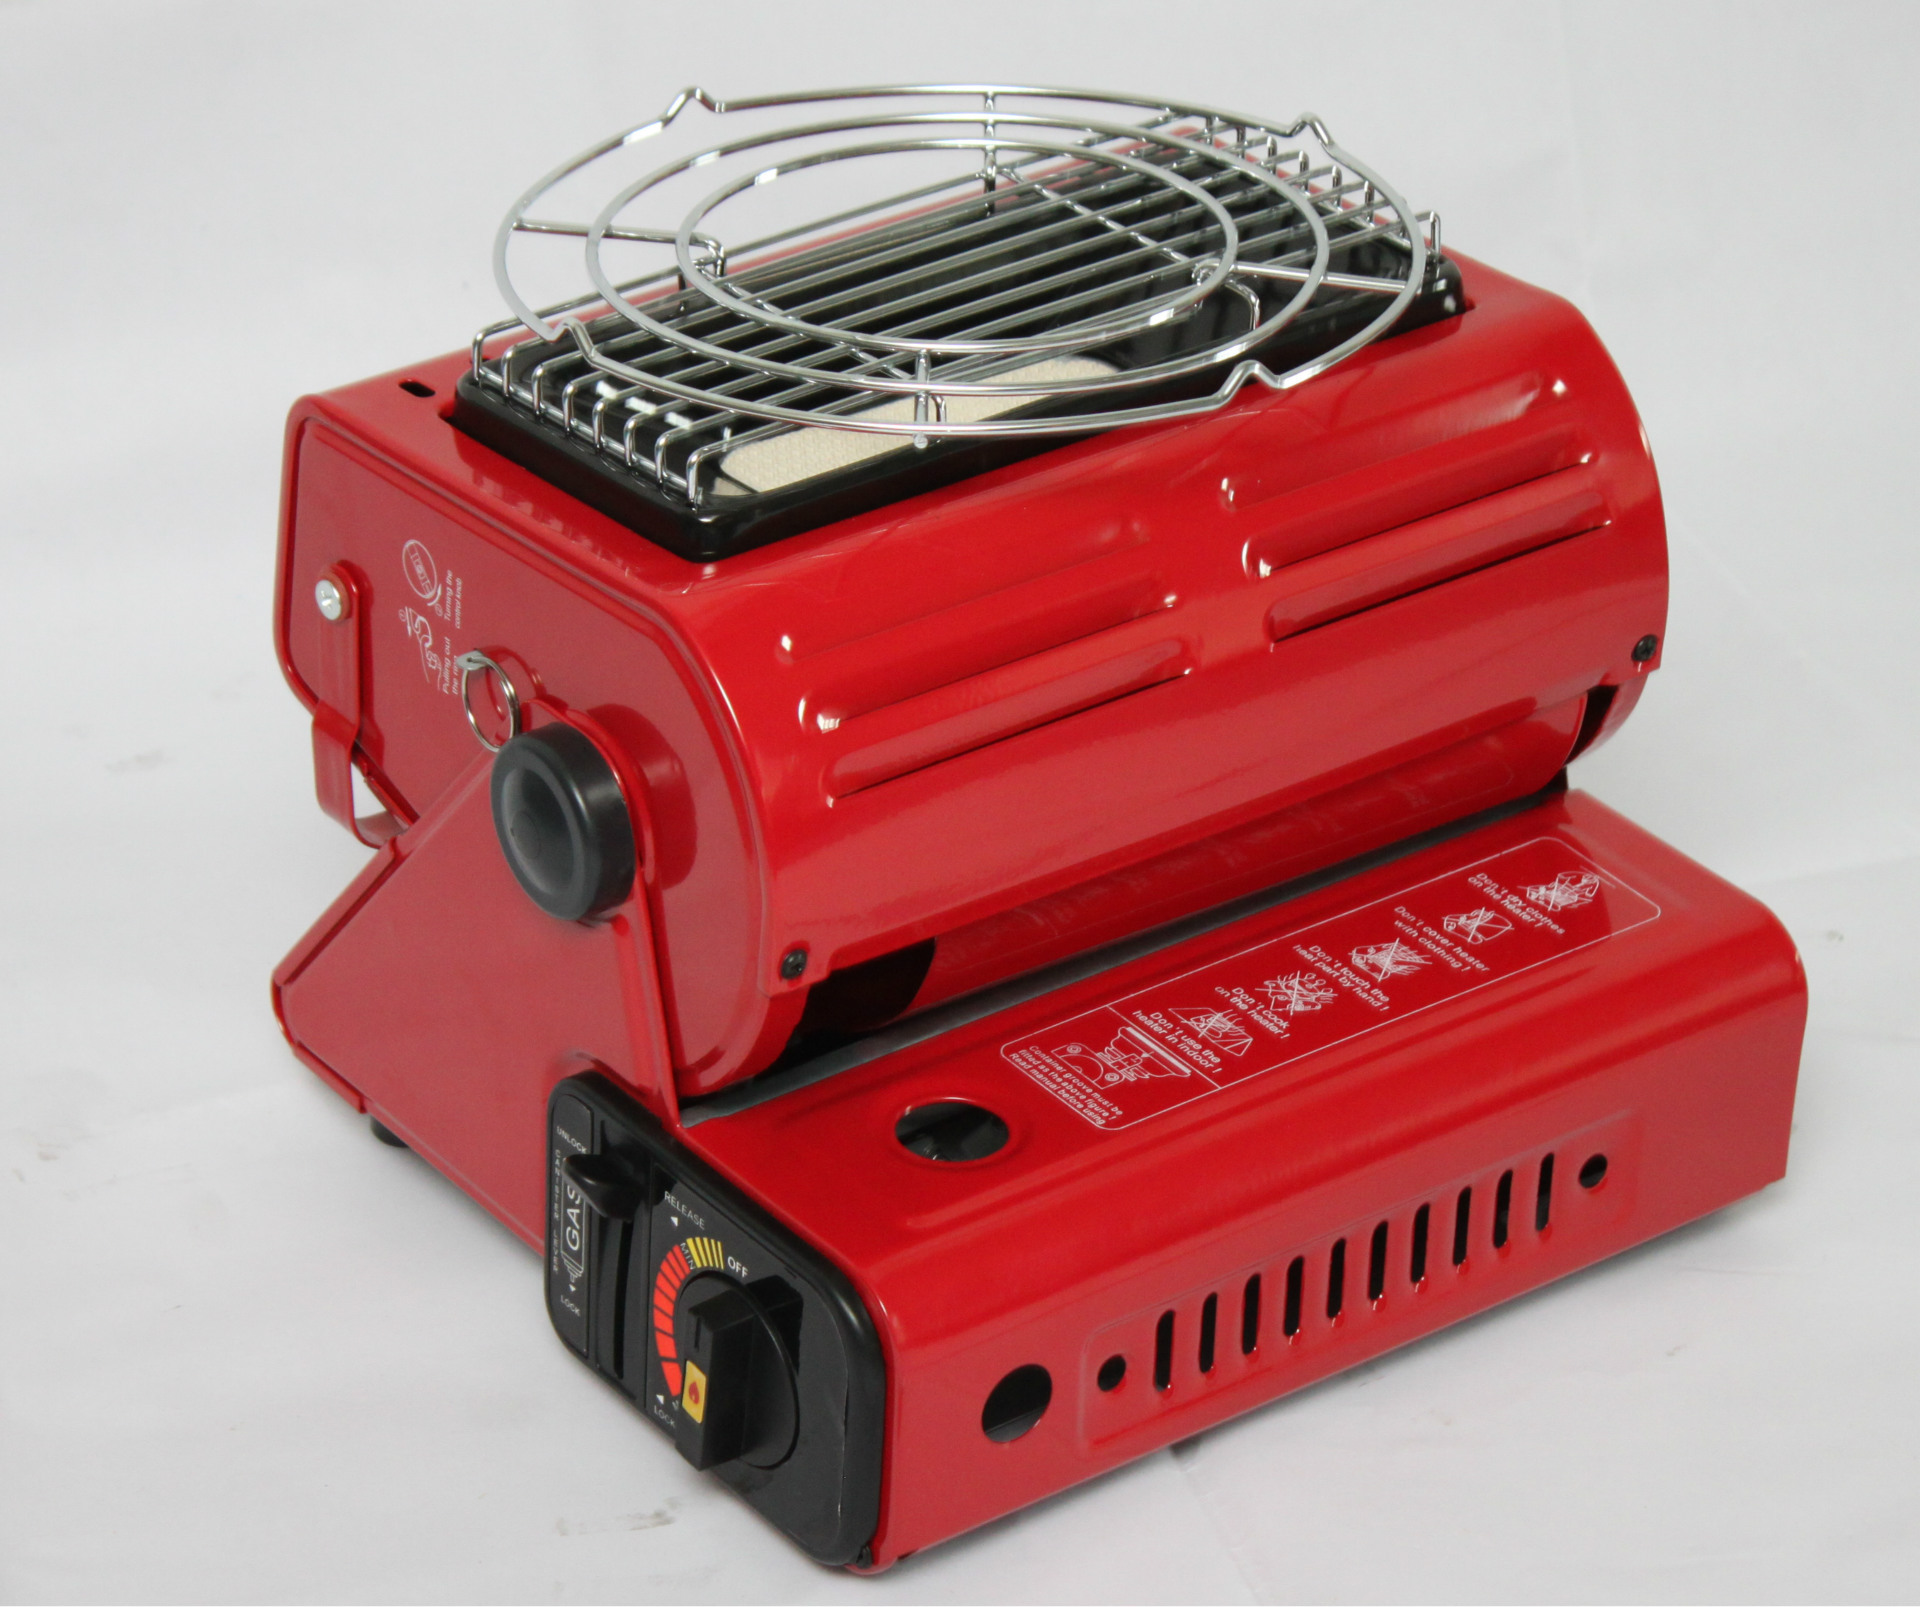 HIGH QUALITY NEW  PORTABLE GAS STOVE CAMPING COOKER HEATER RED